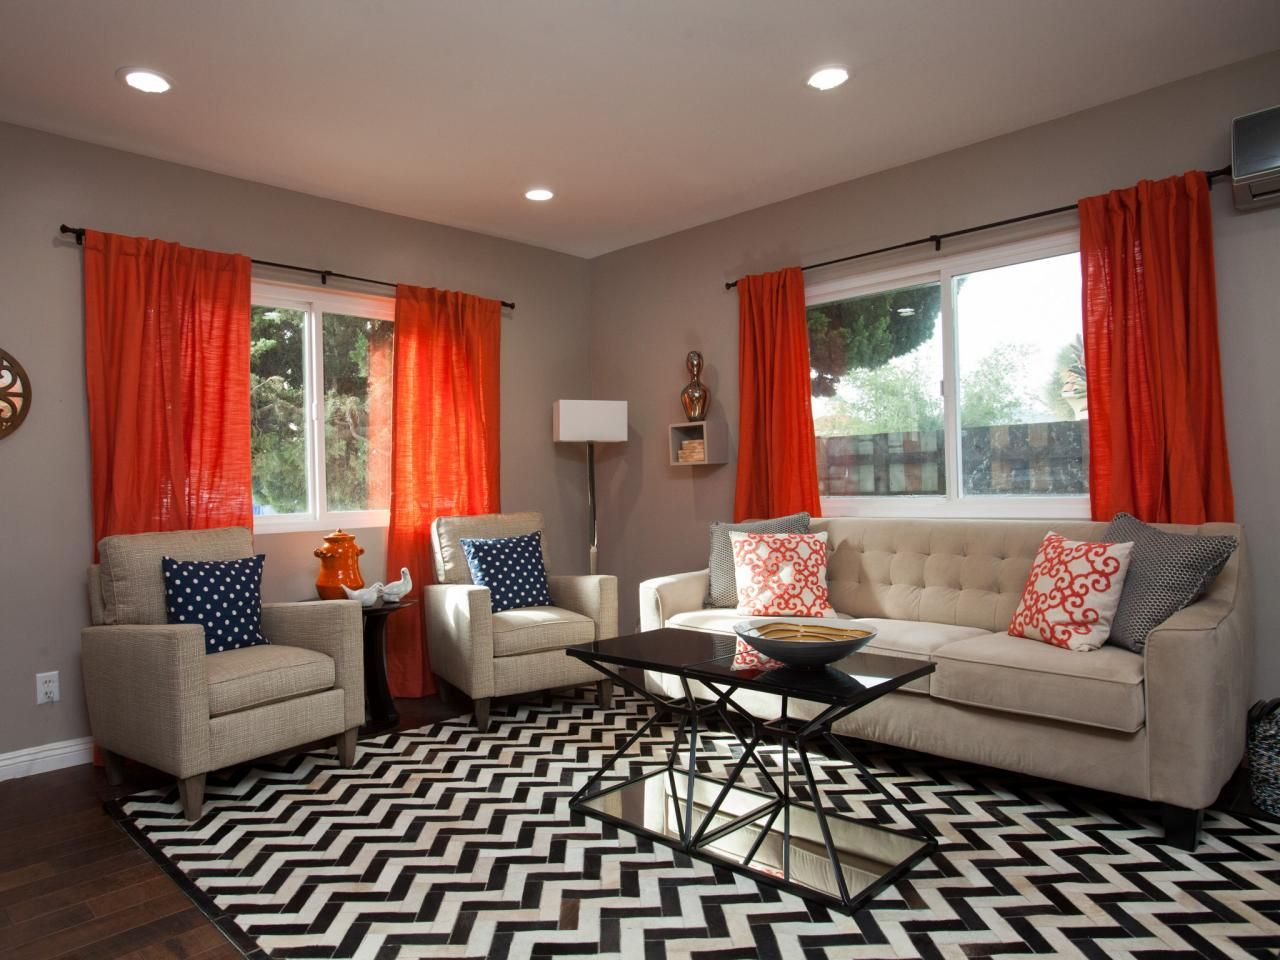 A Blackandwhite Chevron Rug Grounds The Living Room Seating Area Beauteous Orange Curtains For Living Room Inspiration